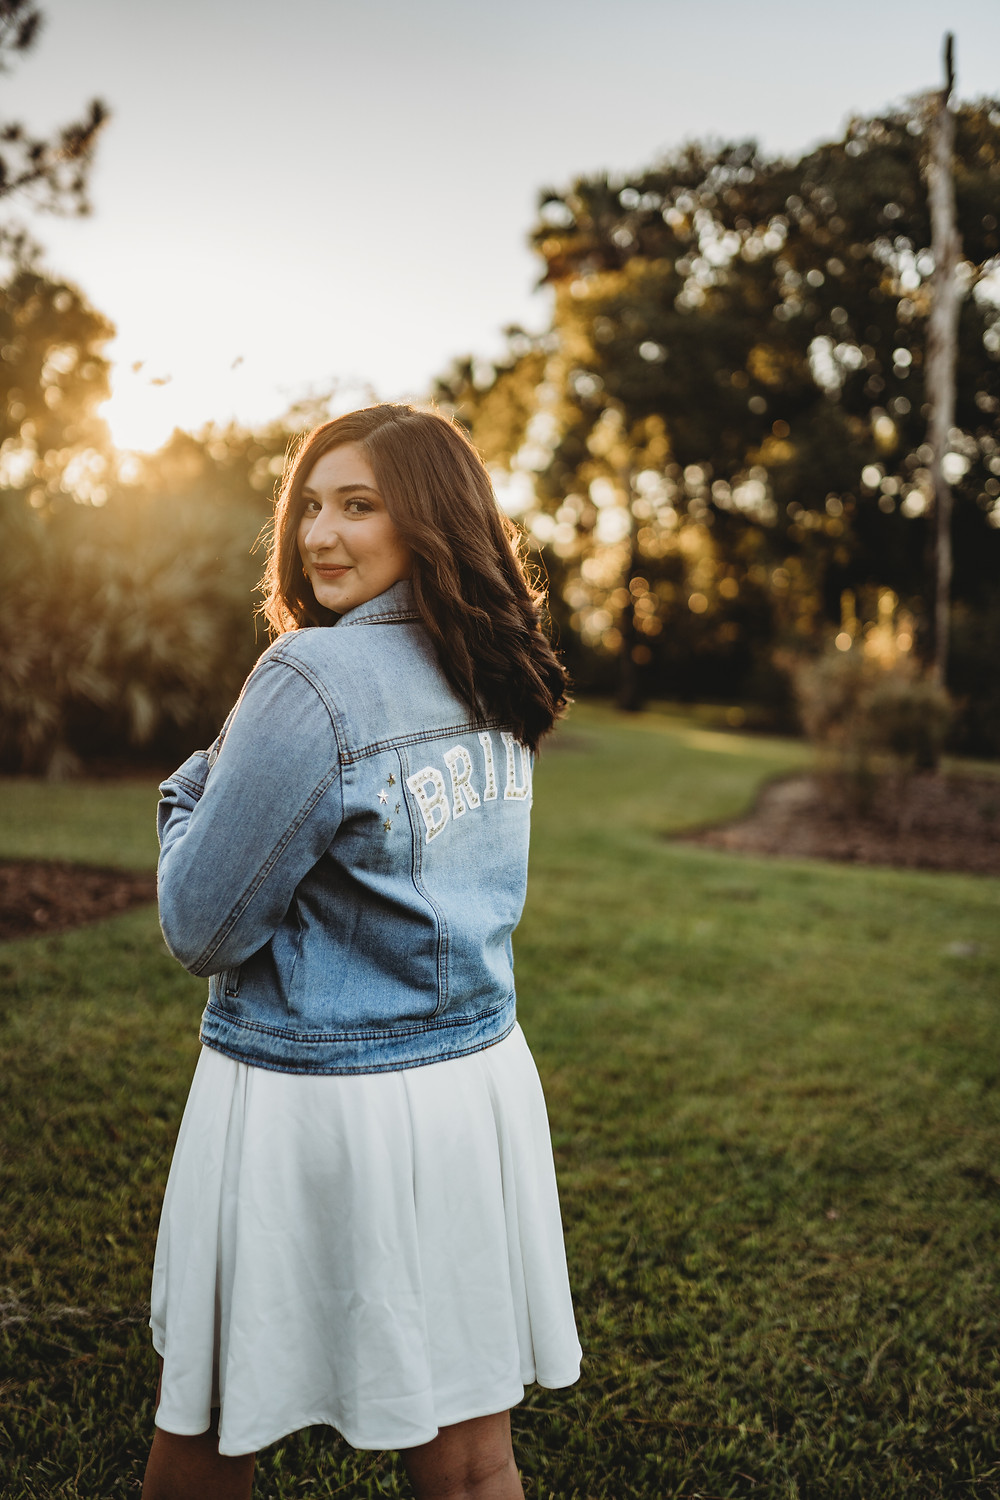 woman looking over shoulder during sunset with jacket on that says bride